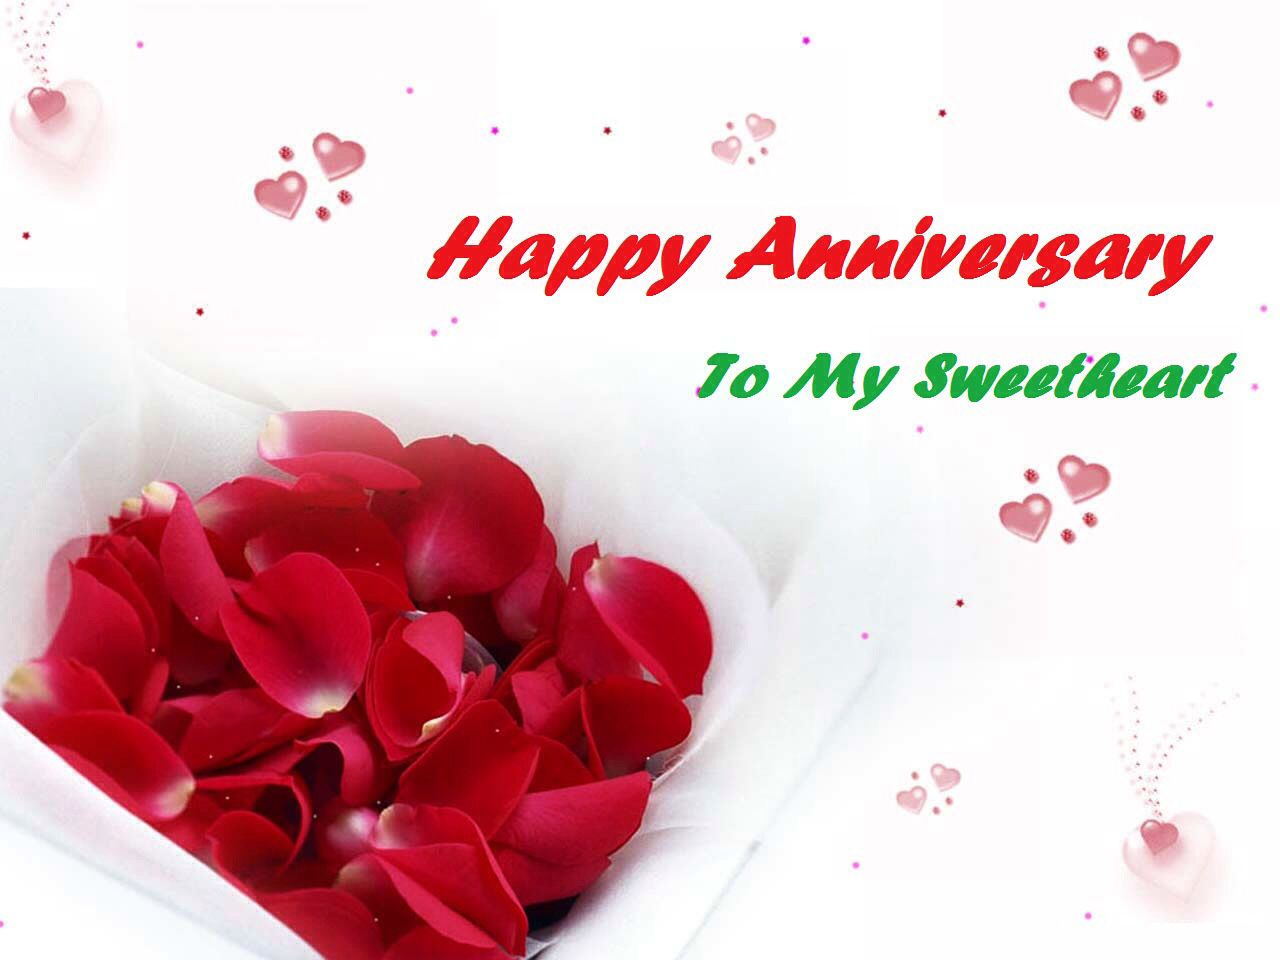 Happy Wedding Anniversary Greeting And Wishes Romentic Wallpaper!